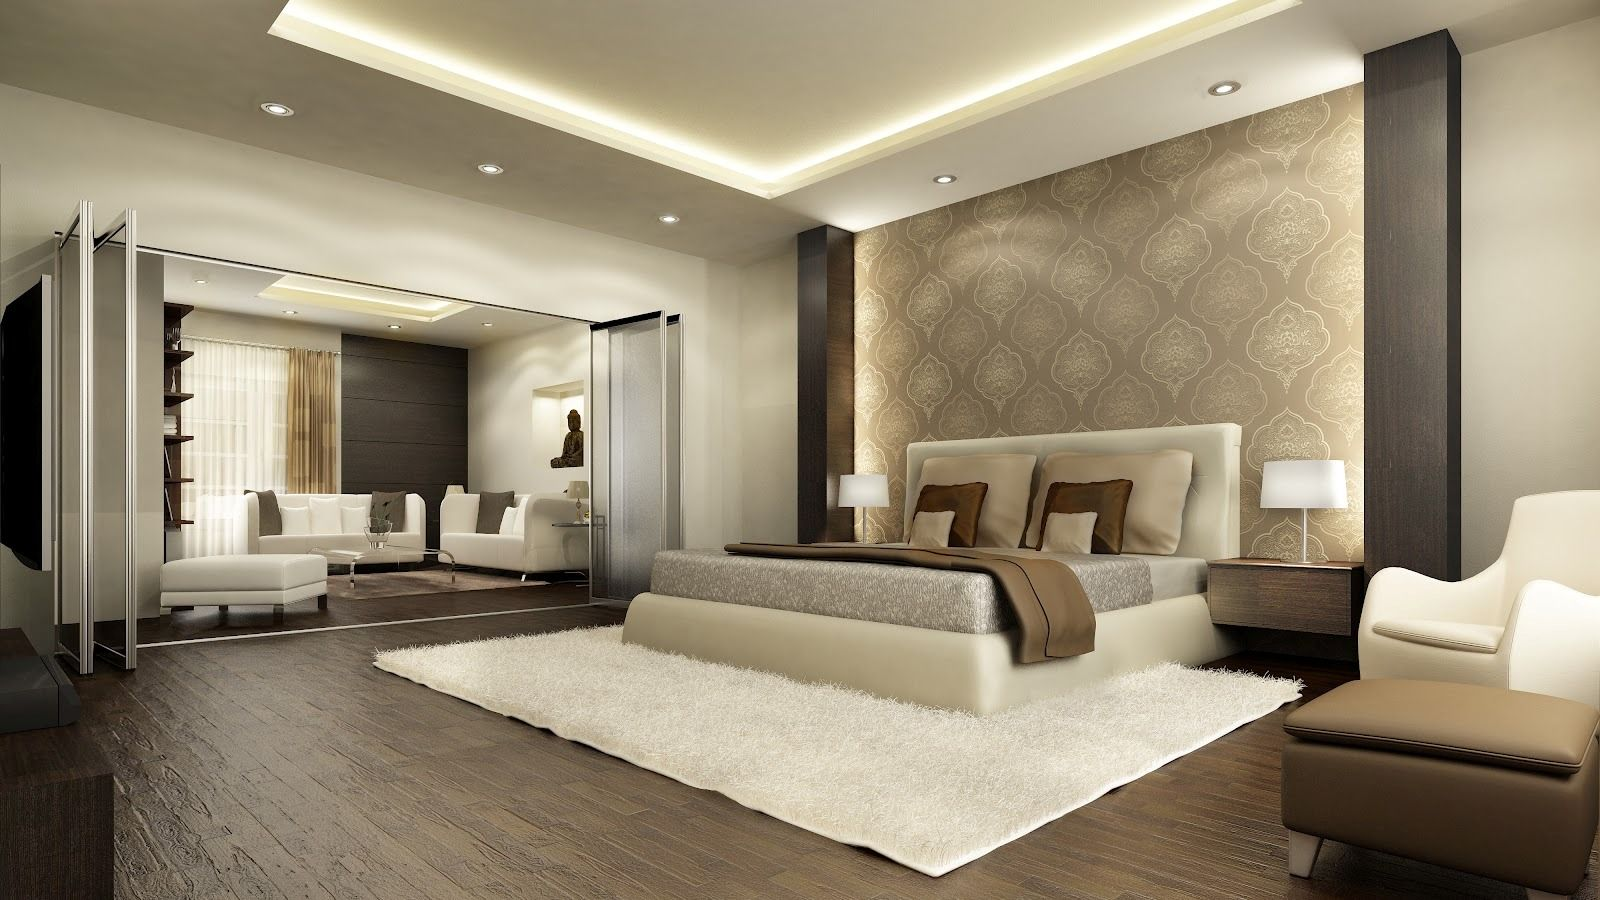 Master Bedroom Modern Design interiorcontemporary interior design concept for small house